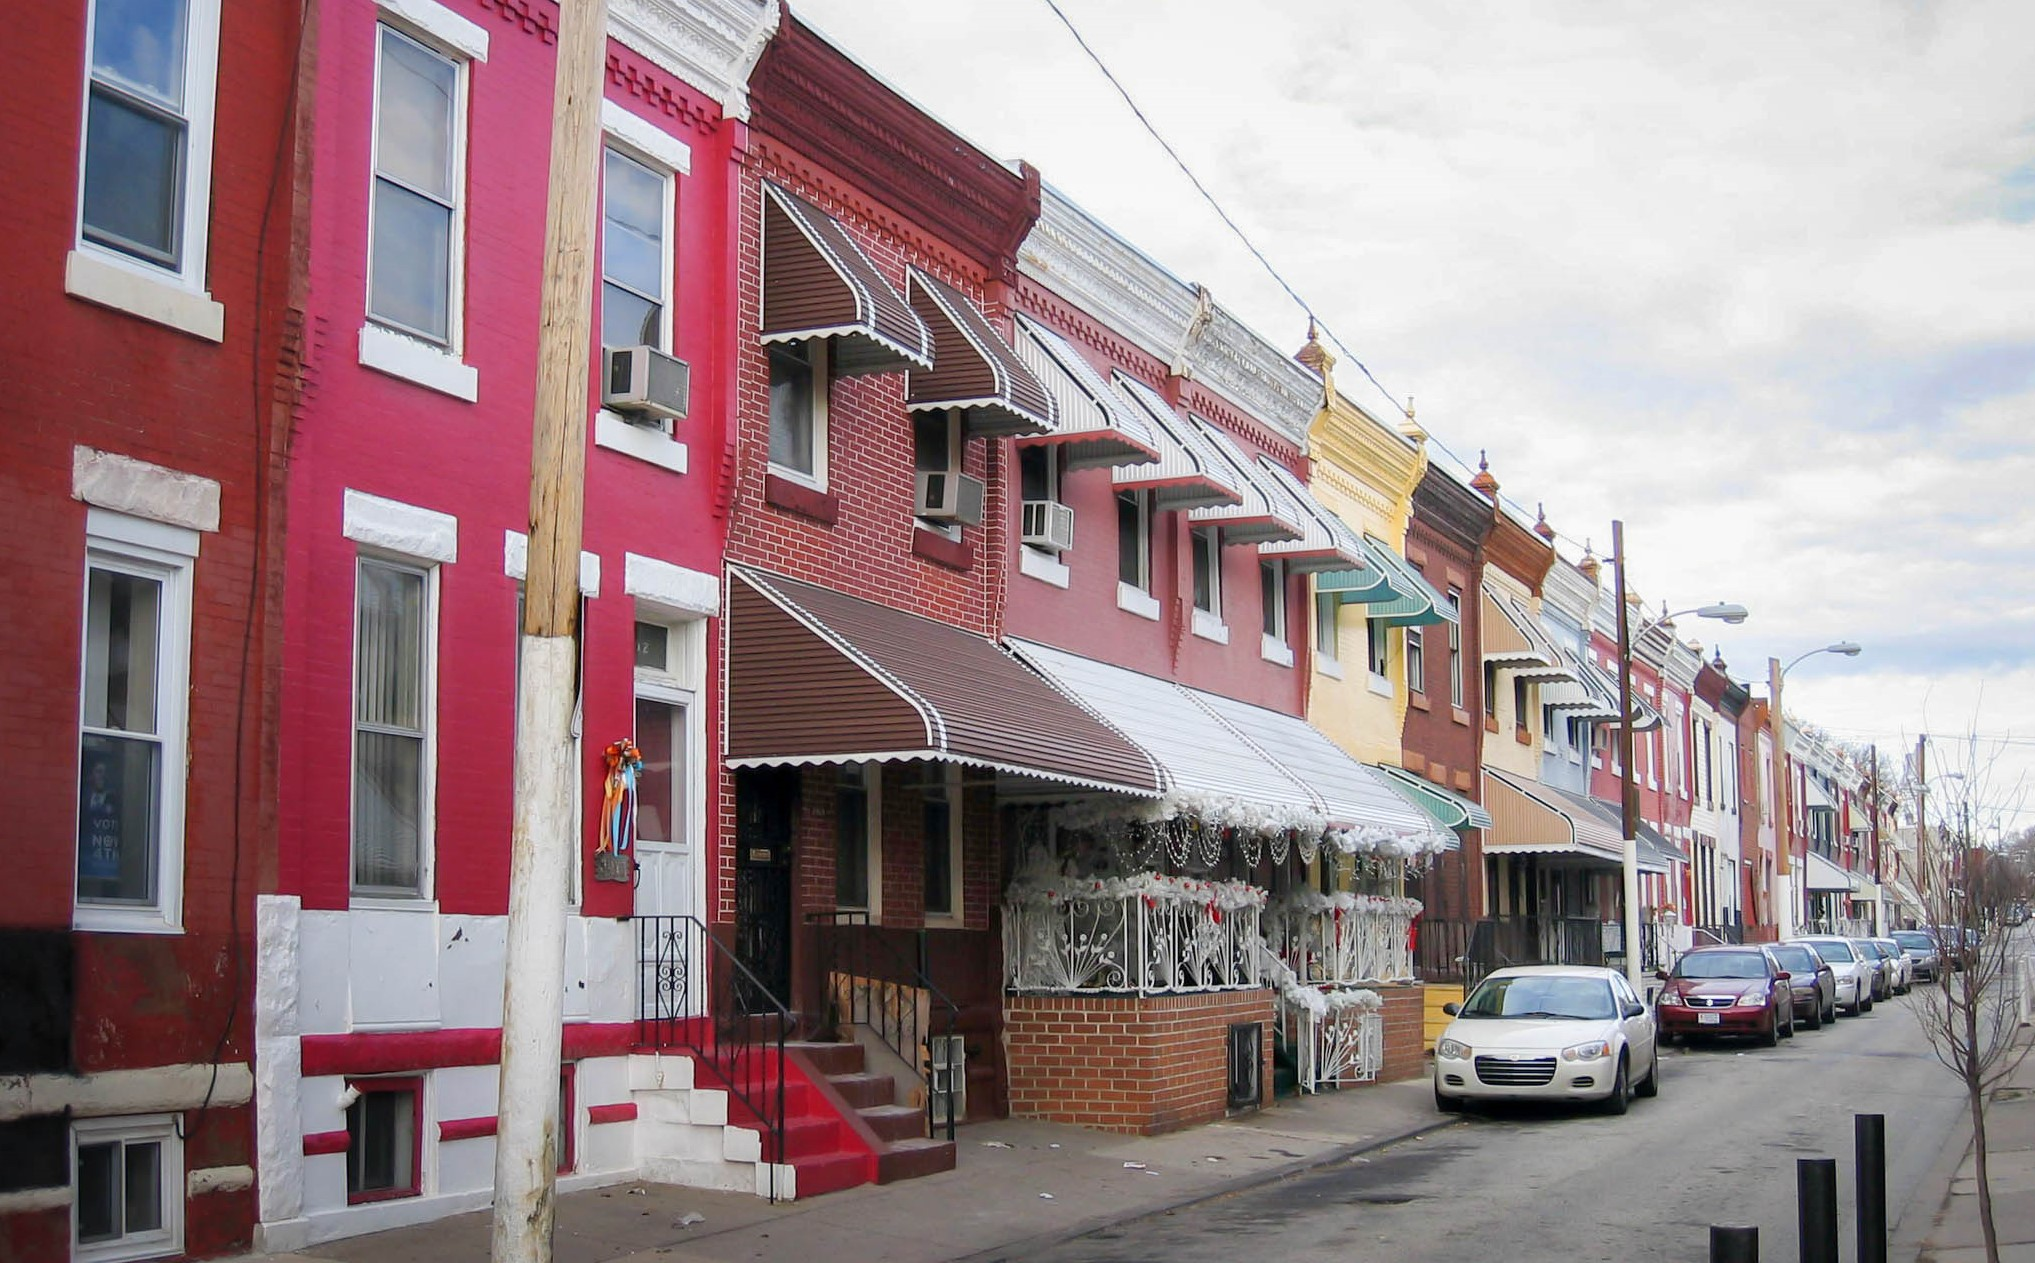 Row homes in Strawberry Mansion. Photo by Eli Pousson